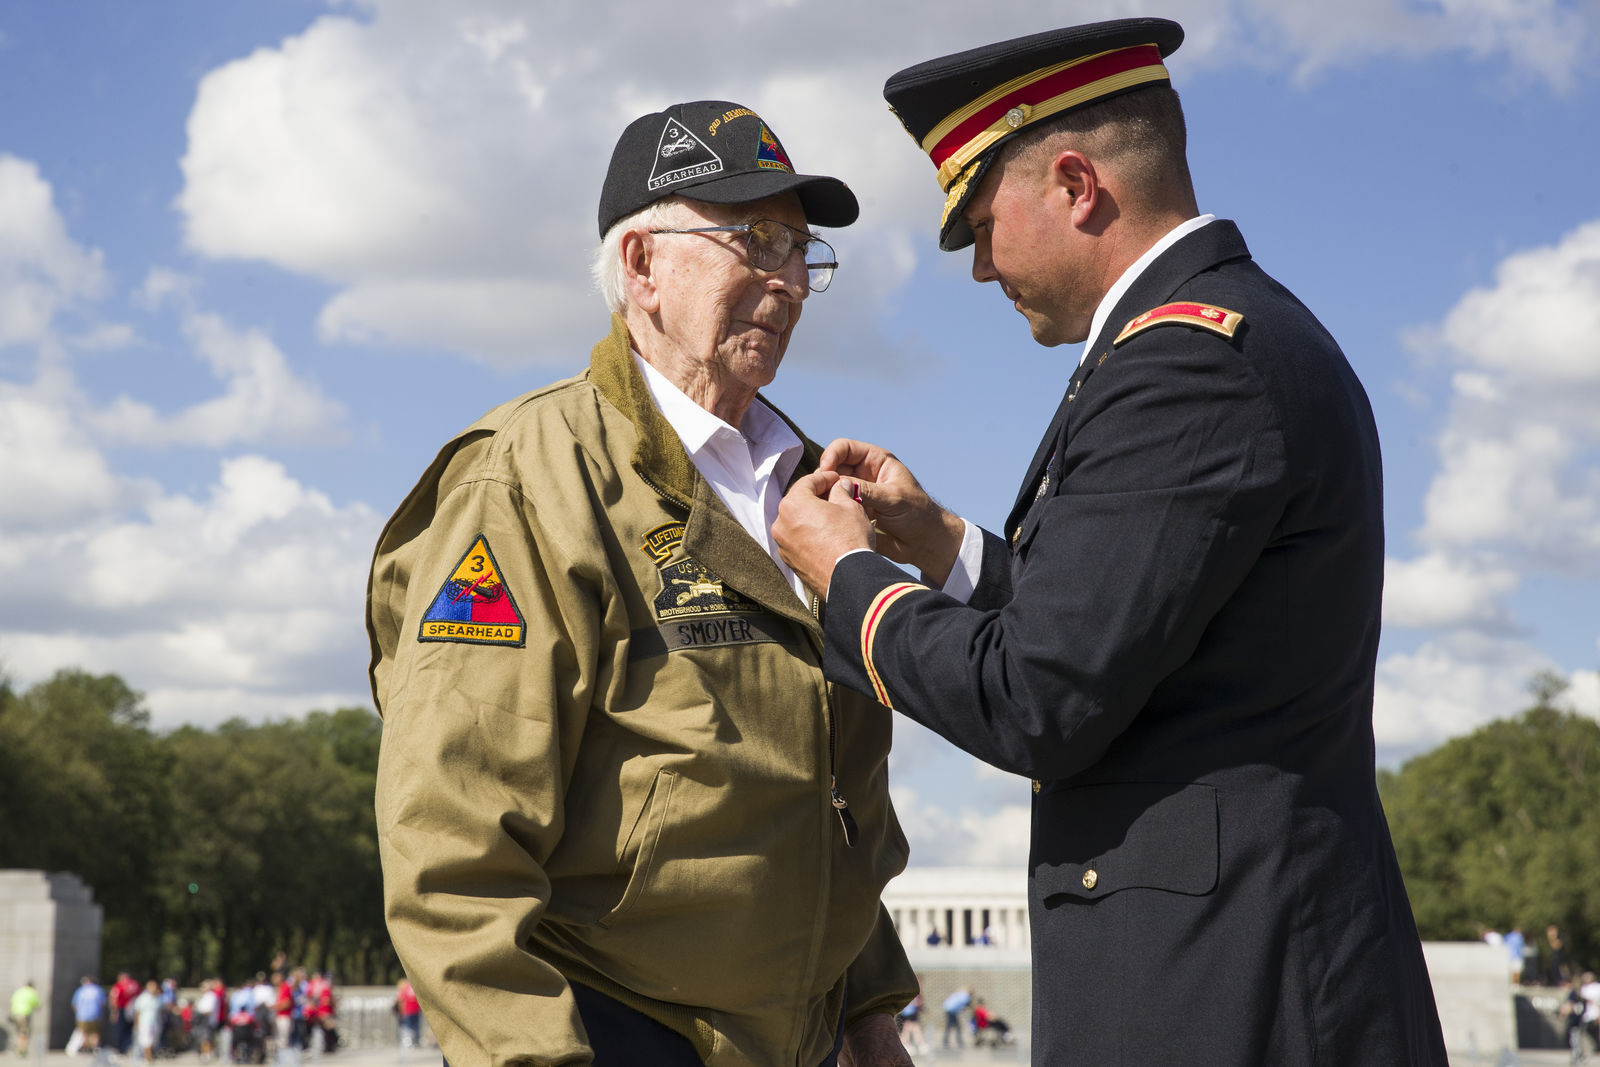 World War II veteran Clarence Smoyer, 96, receives the Bronze Star from U.S. Army Maj. Peter Semanoff at the World War II Memorial, Wednesday, Sept. 18, 2019, in Washington. (AP Photo/Alex Brandon)